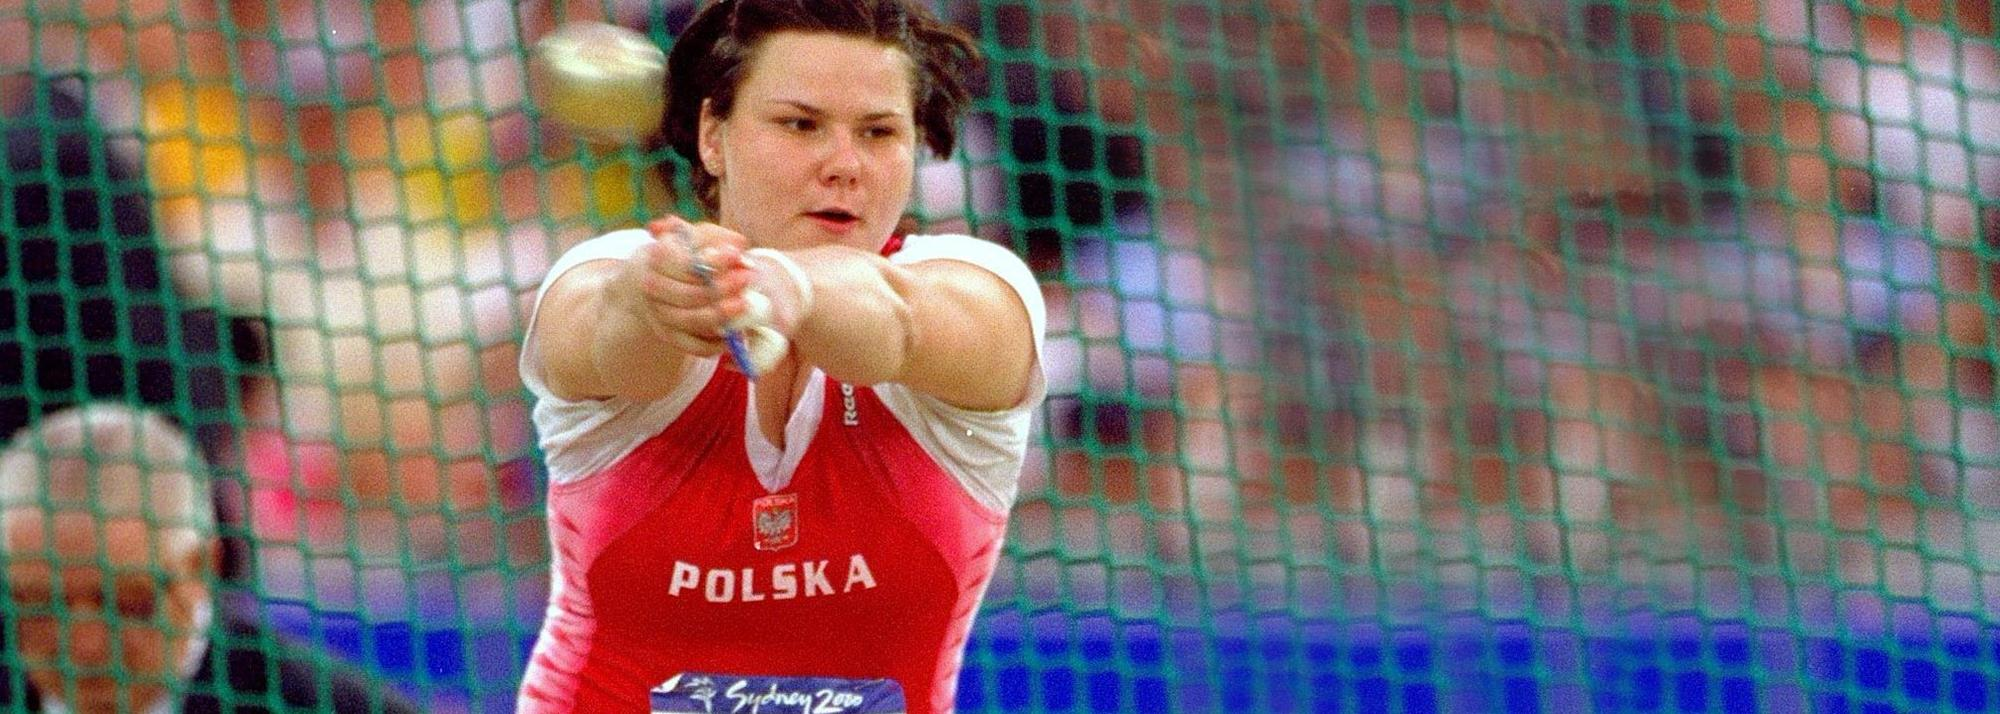 Twenty years after her Olympic triumph, Skolimowska's legacy lives on